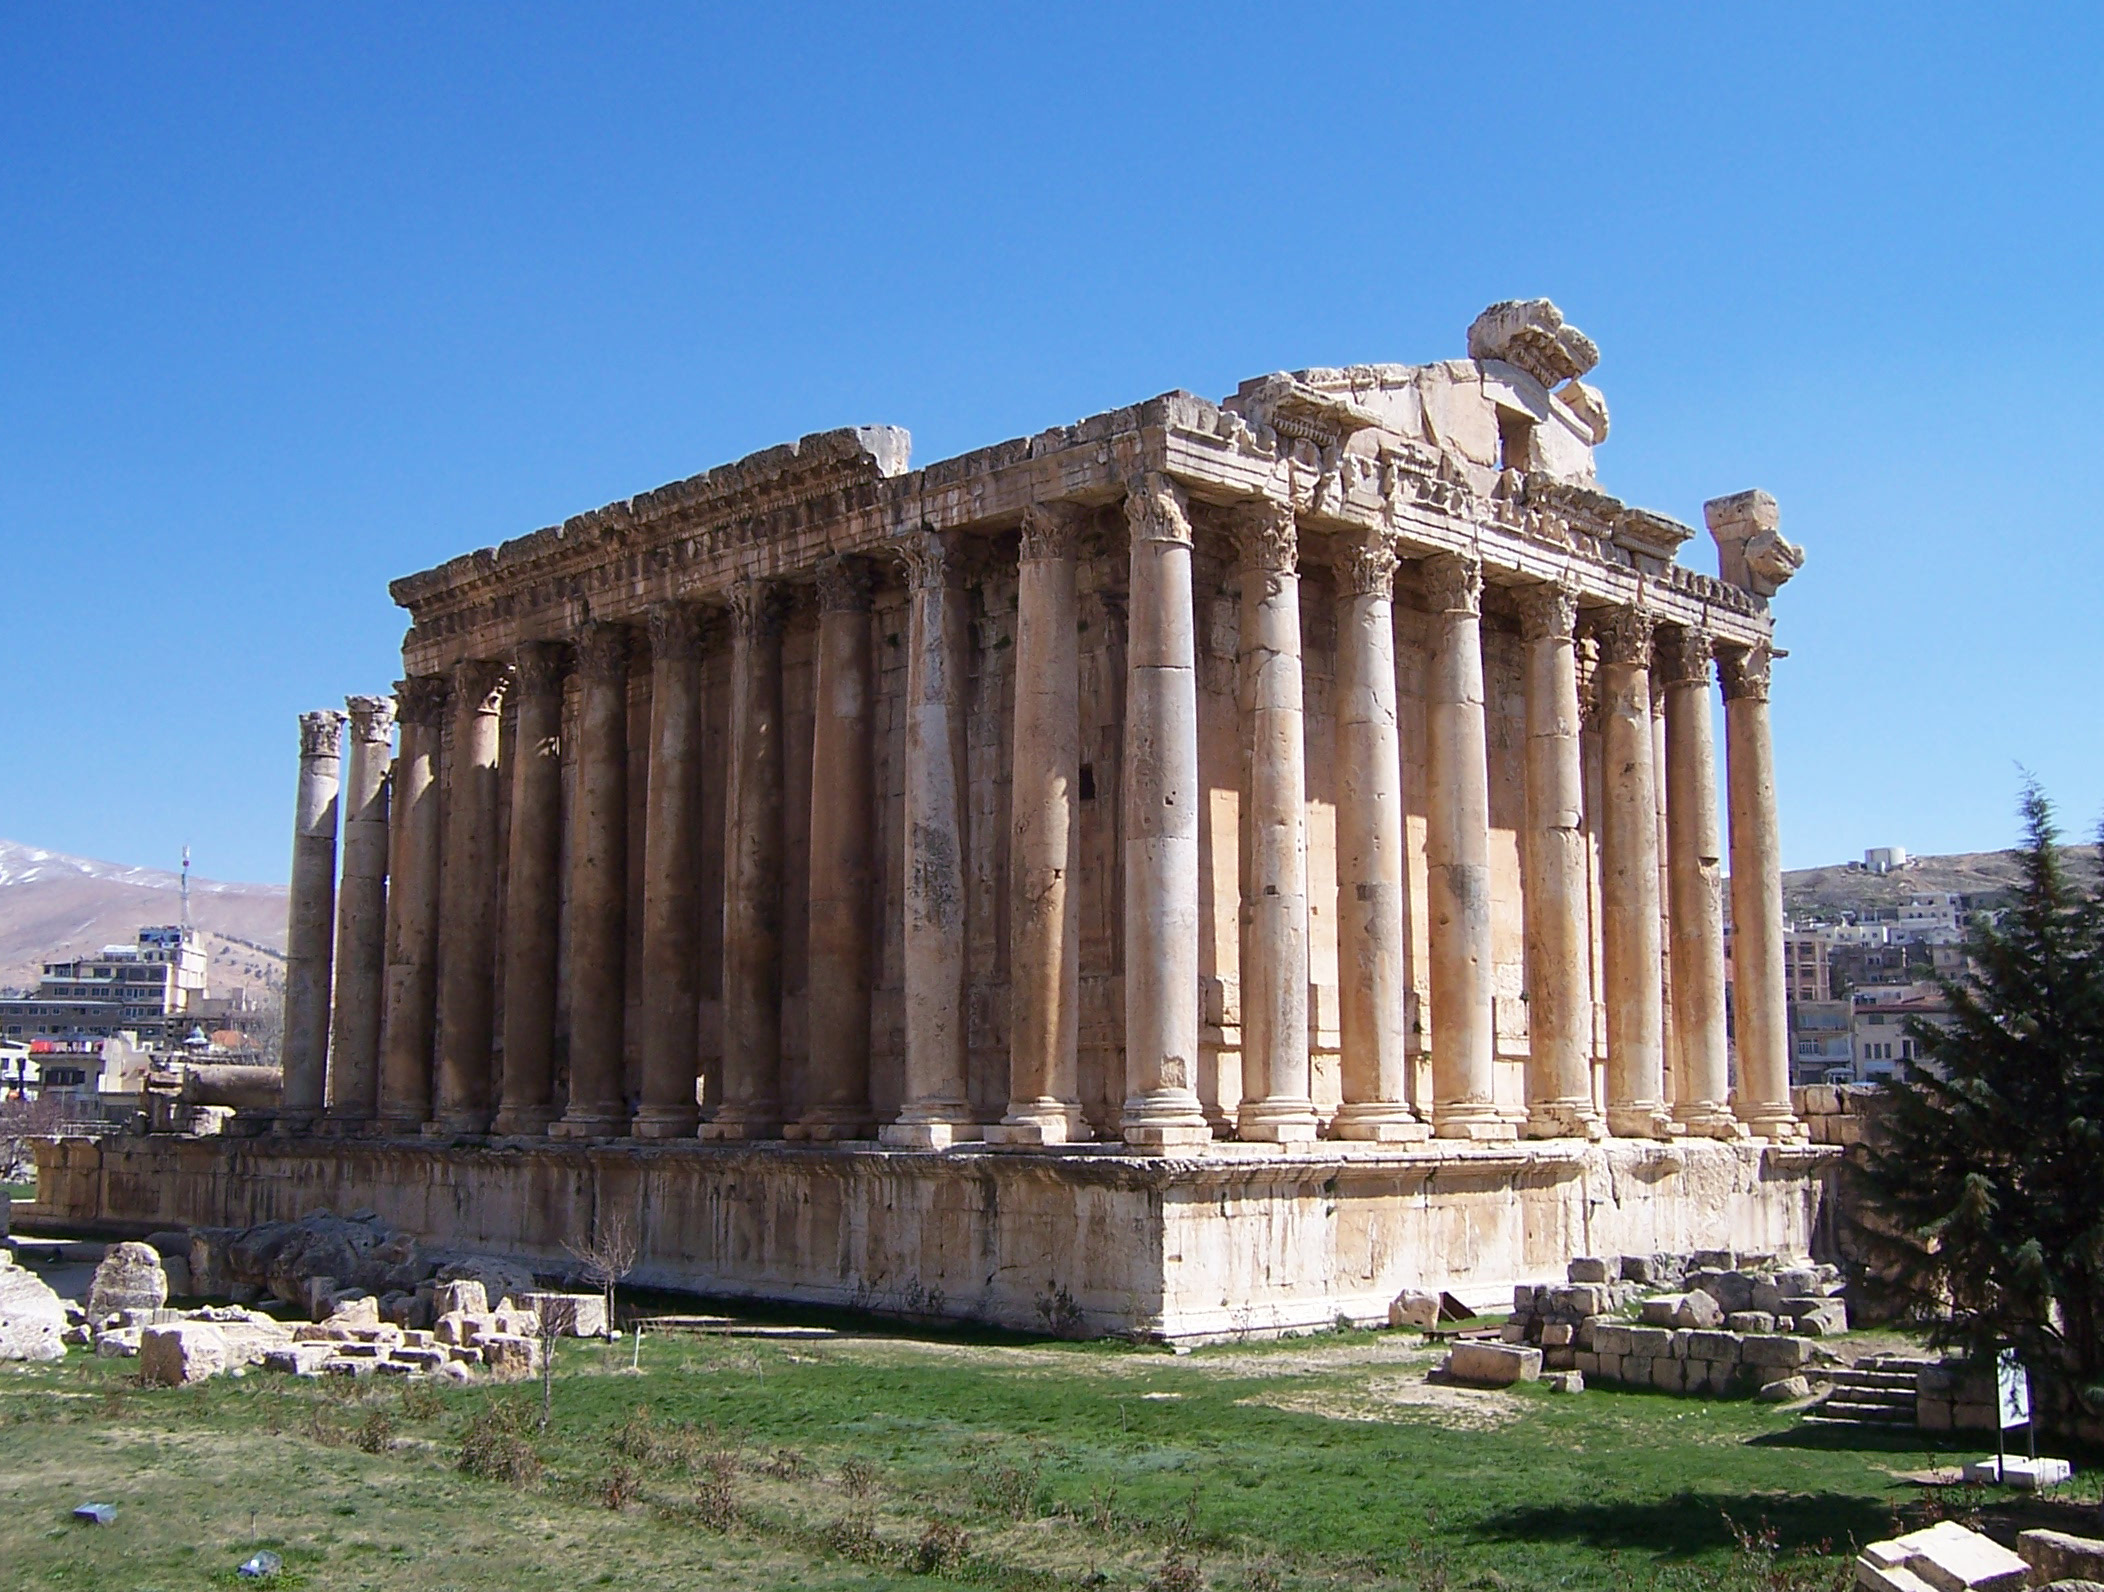 Temple of Jupiter - Baalbek, Beqaa Valley